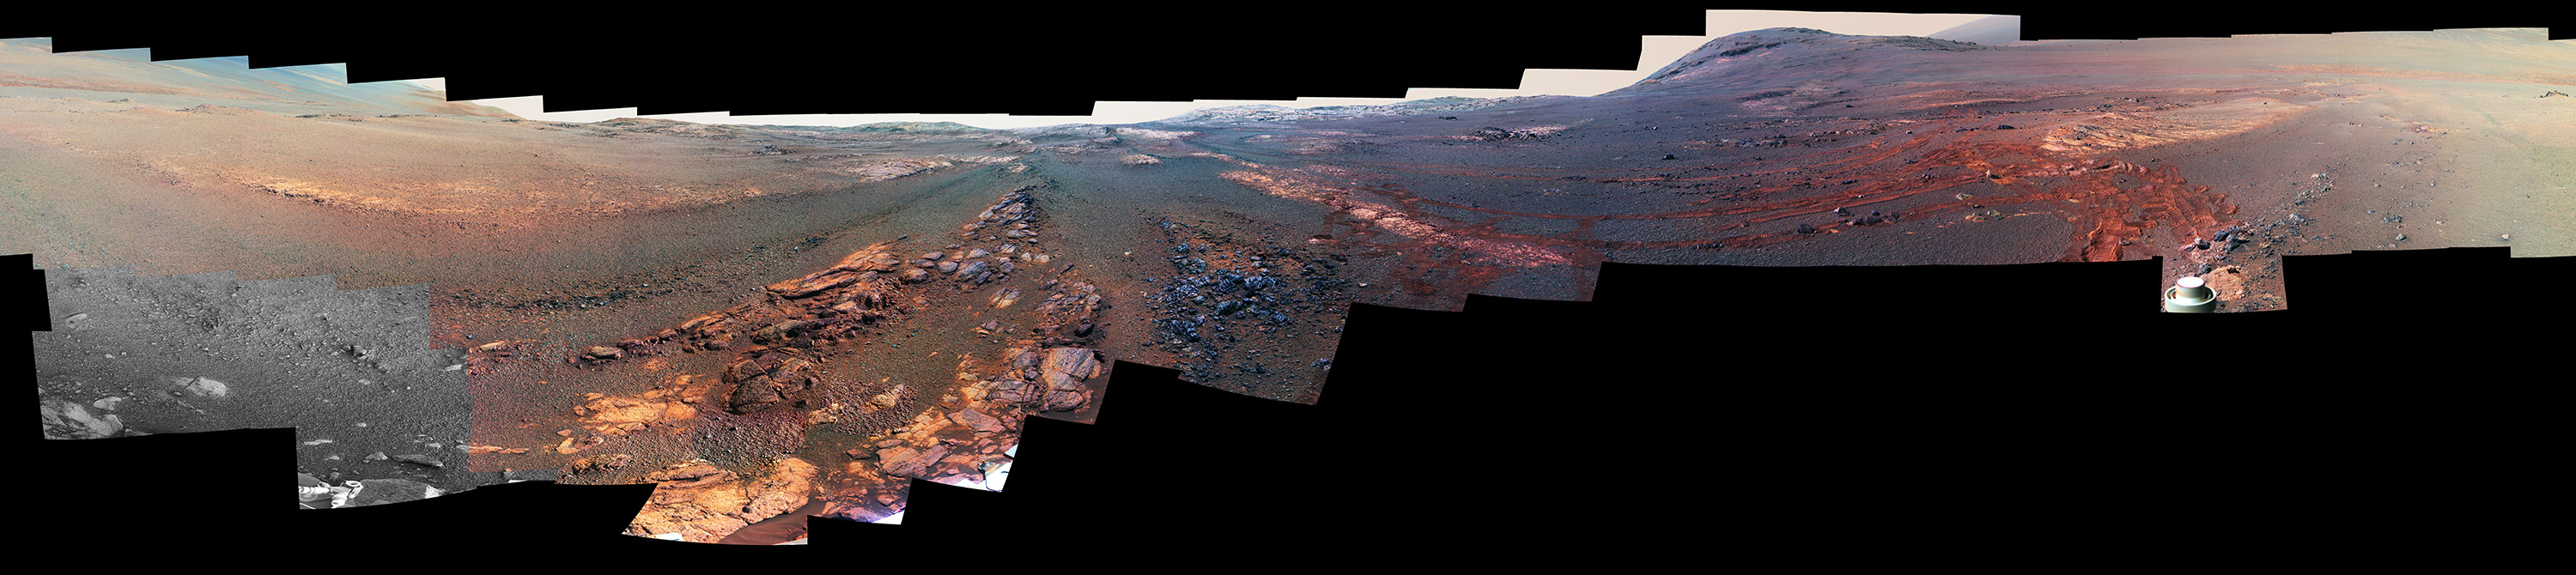 slide 3 - This image is a cropped version of the last 360-degree panorama taken by the Opportunity rover's Panoramic Camera (Pancam) from May 13 through June 10, 2018. The view is presented in false color to make some differences between materials easier to see.